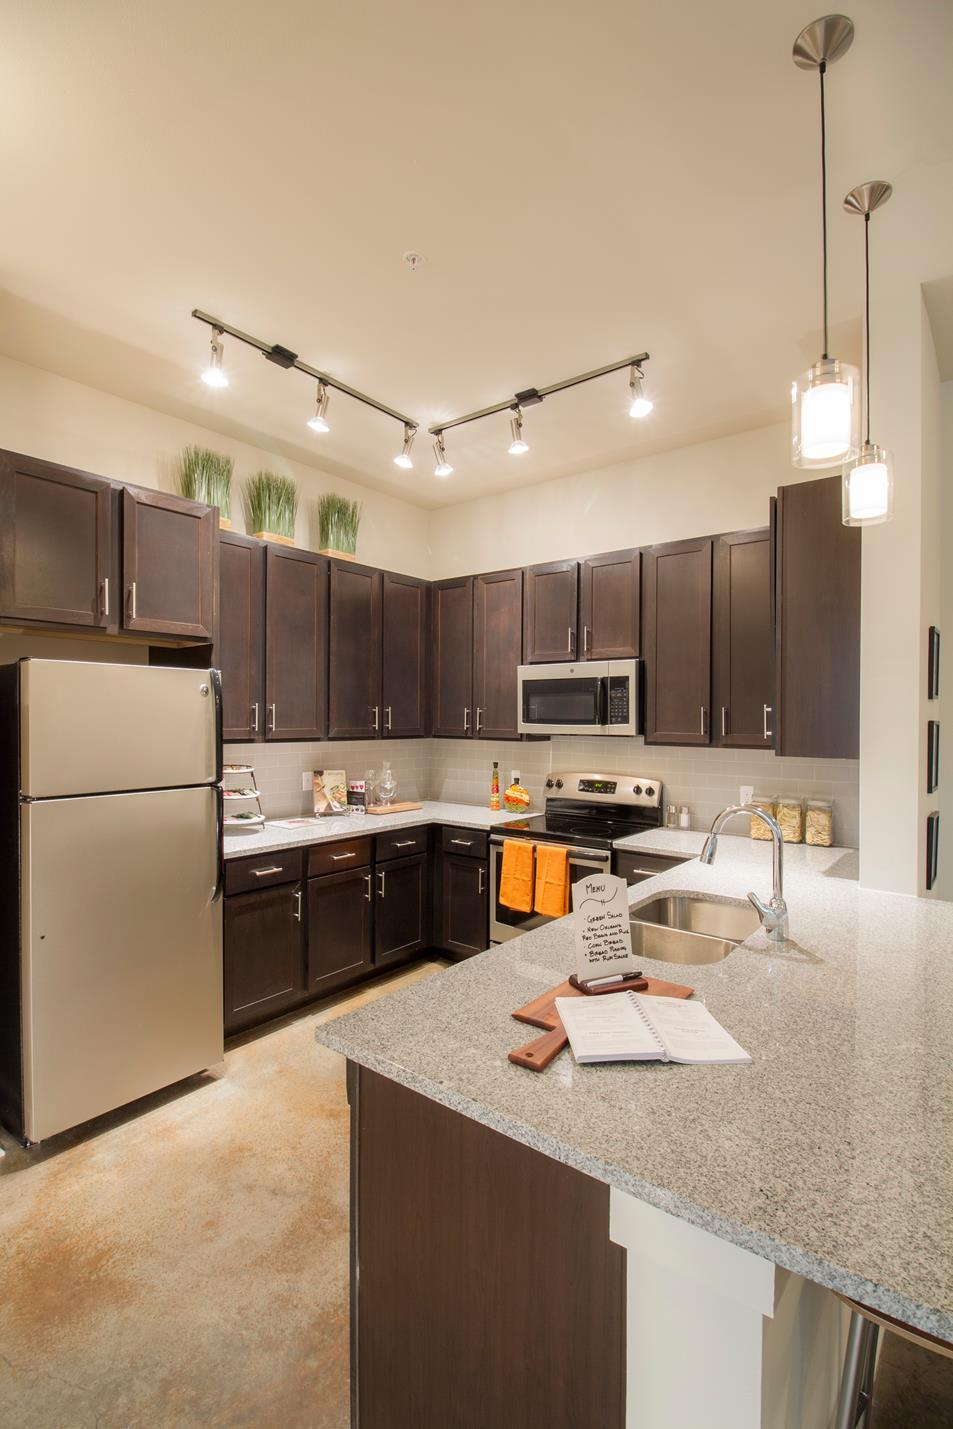 Granite Countertops in all Kitchens at The District, Baton Rouge